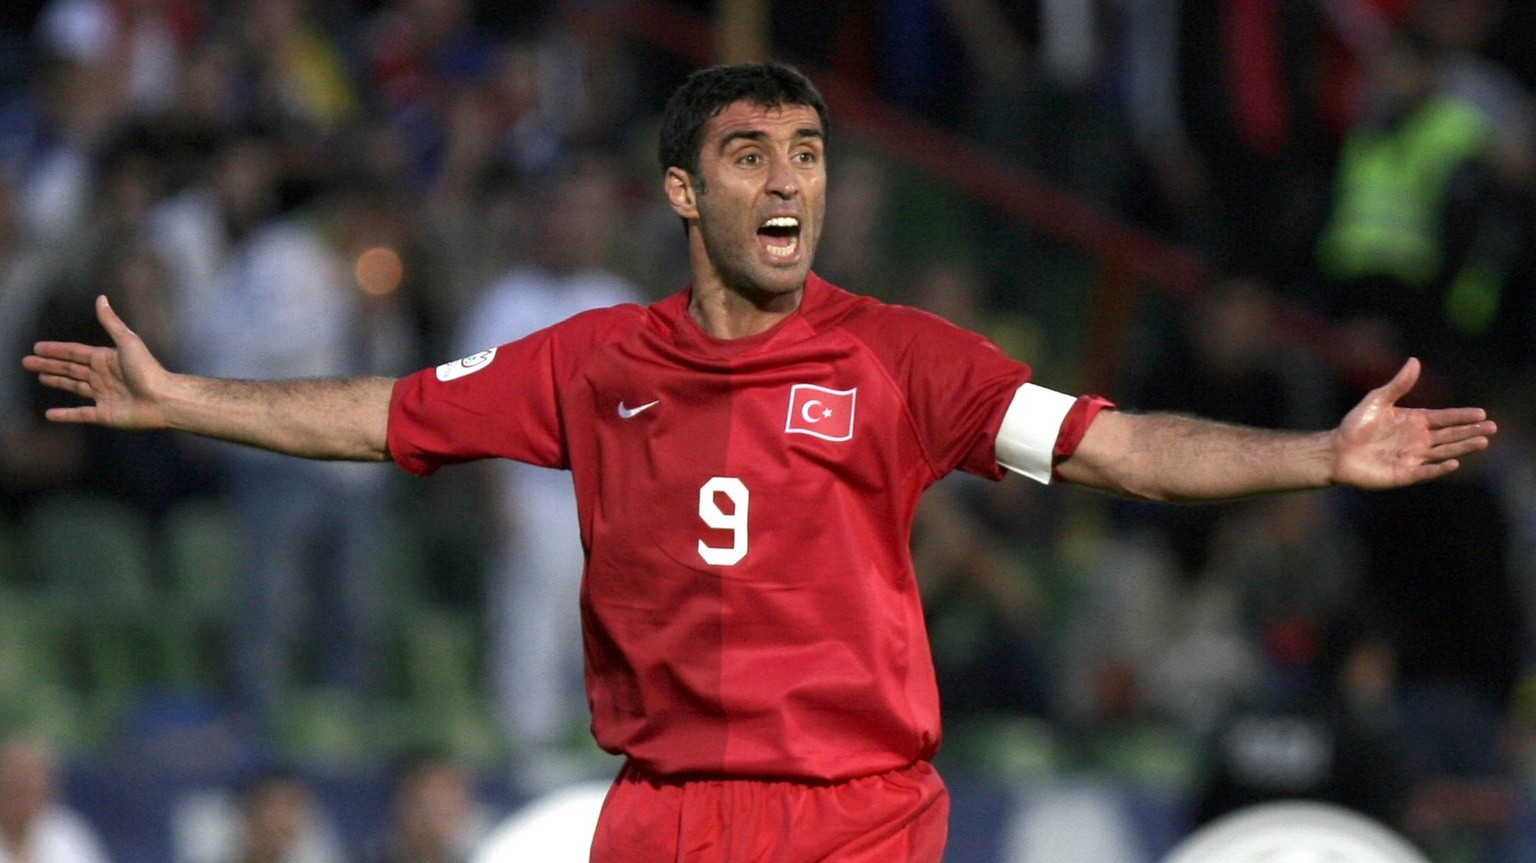 FILE - In this Saturday, June 2, 2007, file photo Turkey's Hakan Sukur reacts during the Group C Euro 2008 qualifying soccer match against Bosnia at the Olympic stadium in Sarajevo. Turkey's state-run news agency reports Friday, Aug. 12, 2016, authorities have issued an arrest warrant for former soccer star and legislator Hakan Sukur over his alleged links to a U.S.-based Muslim cleric, accused by Turkey of masterminding last month's failed coup. (AP Photo/Amel Emric, FILE)